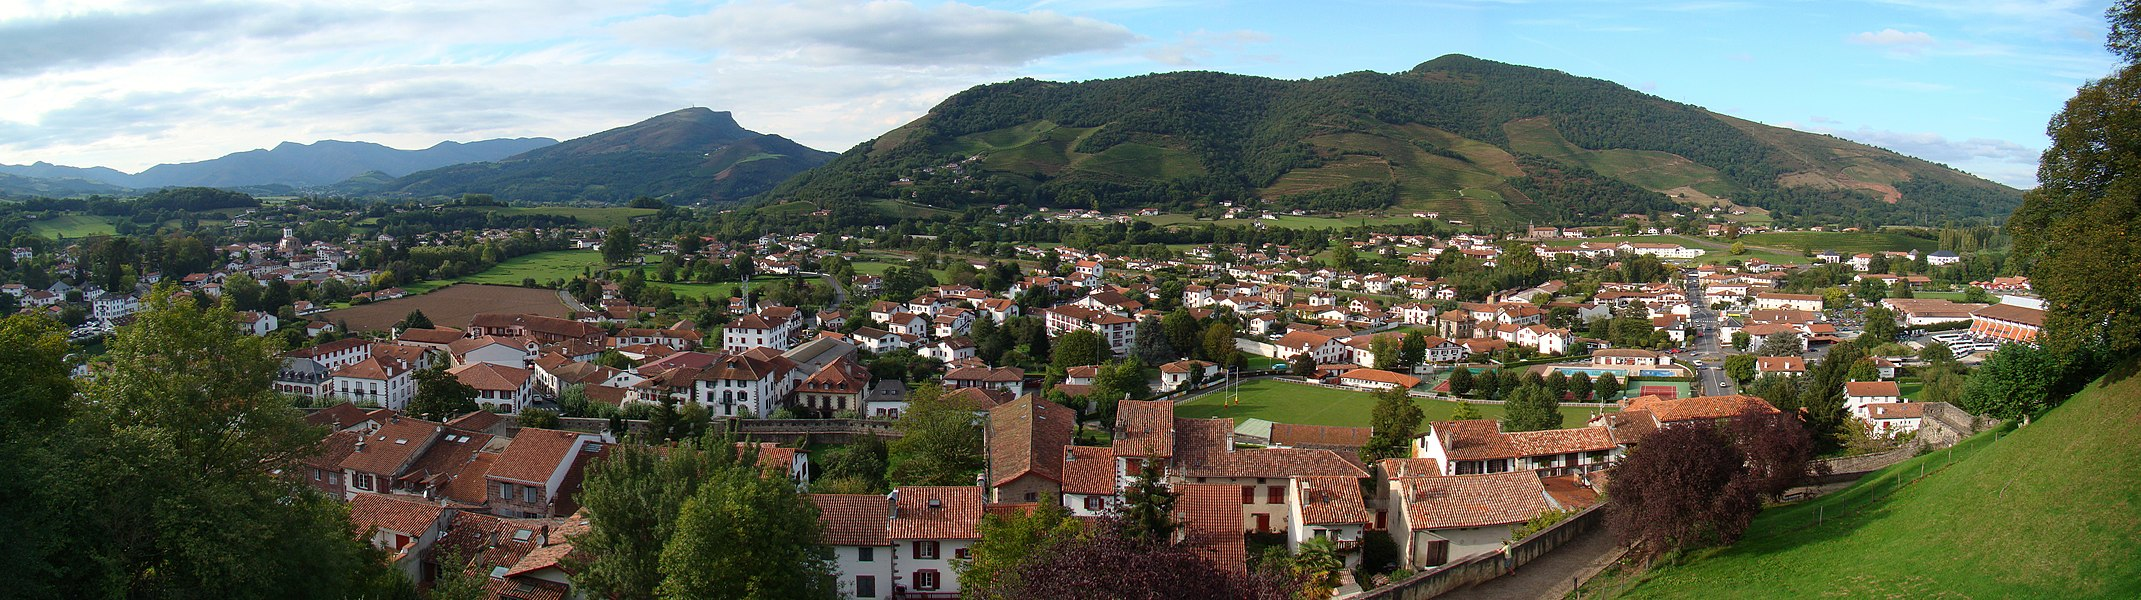 The view of St Jean Pied de Port from the Citadelle towards the north-west.